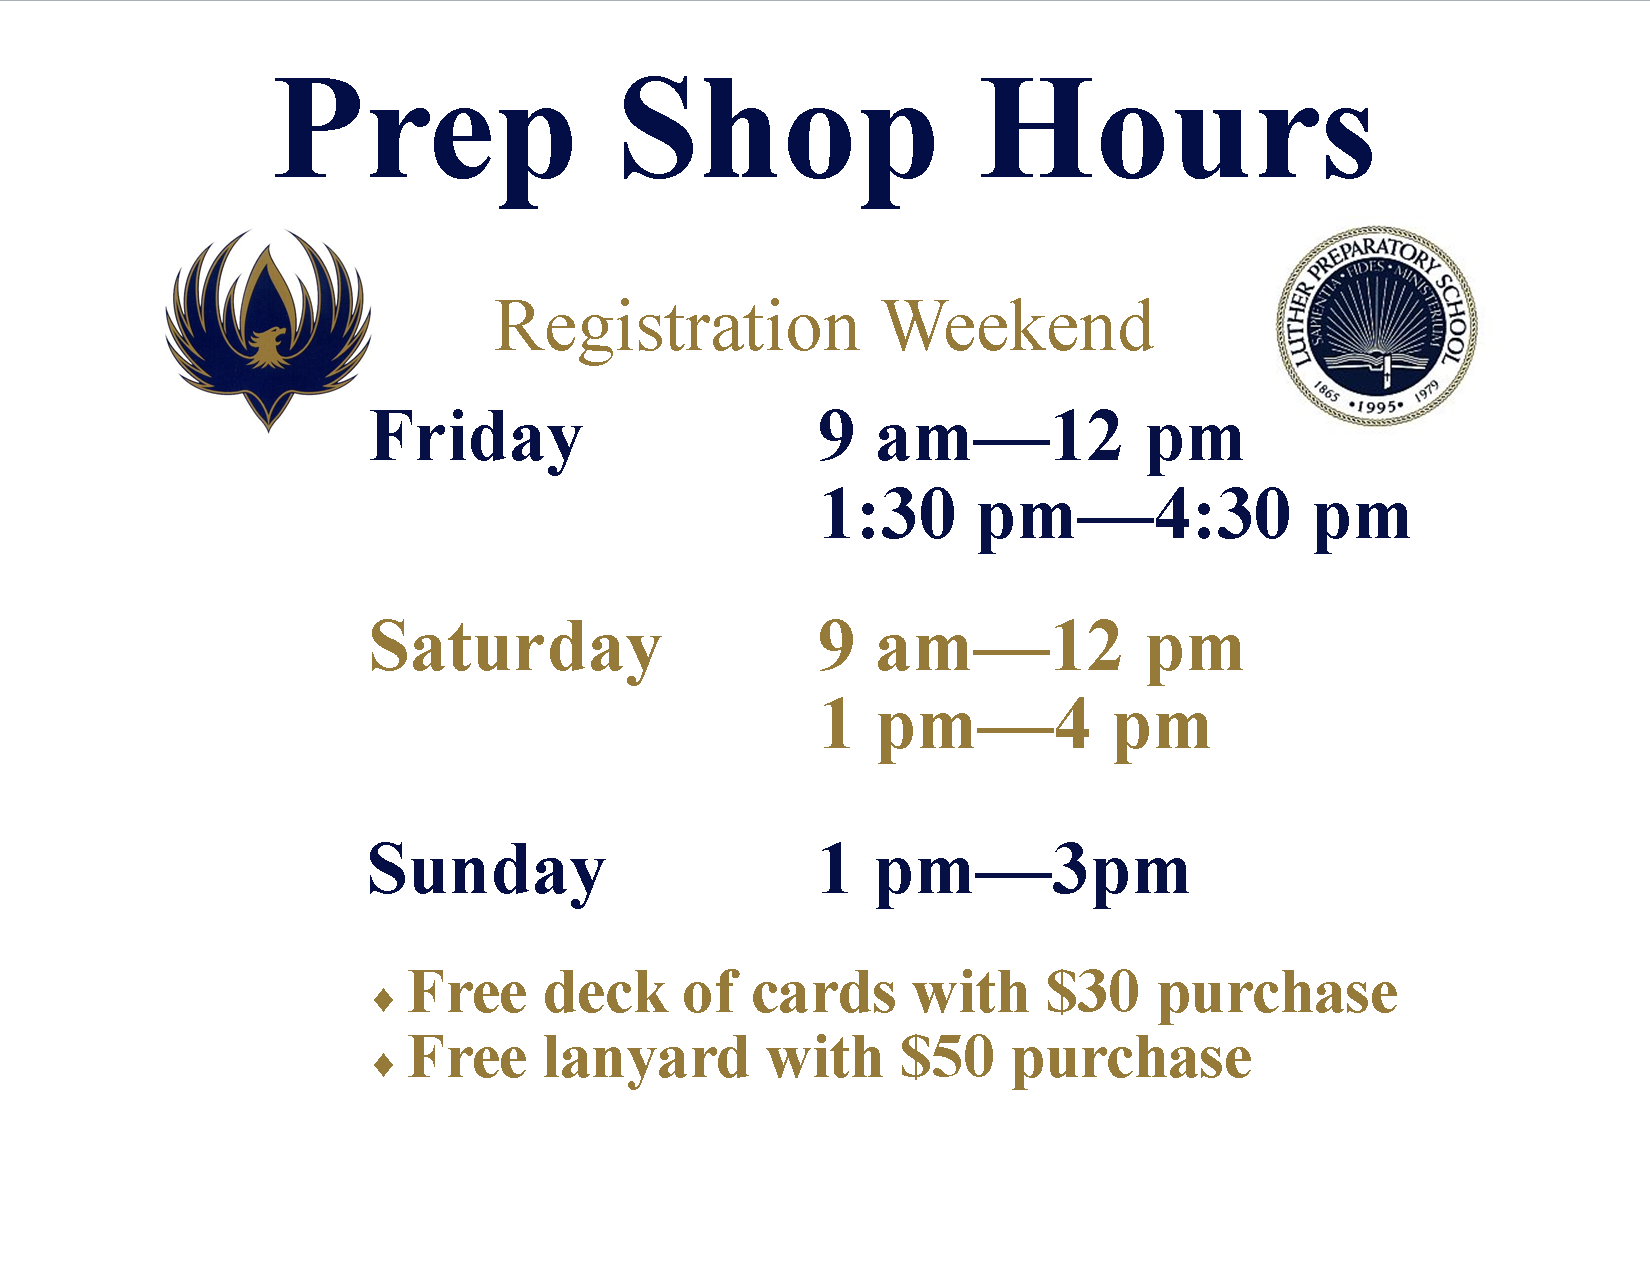 Prep Shop Hours